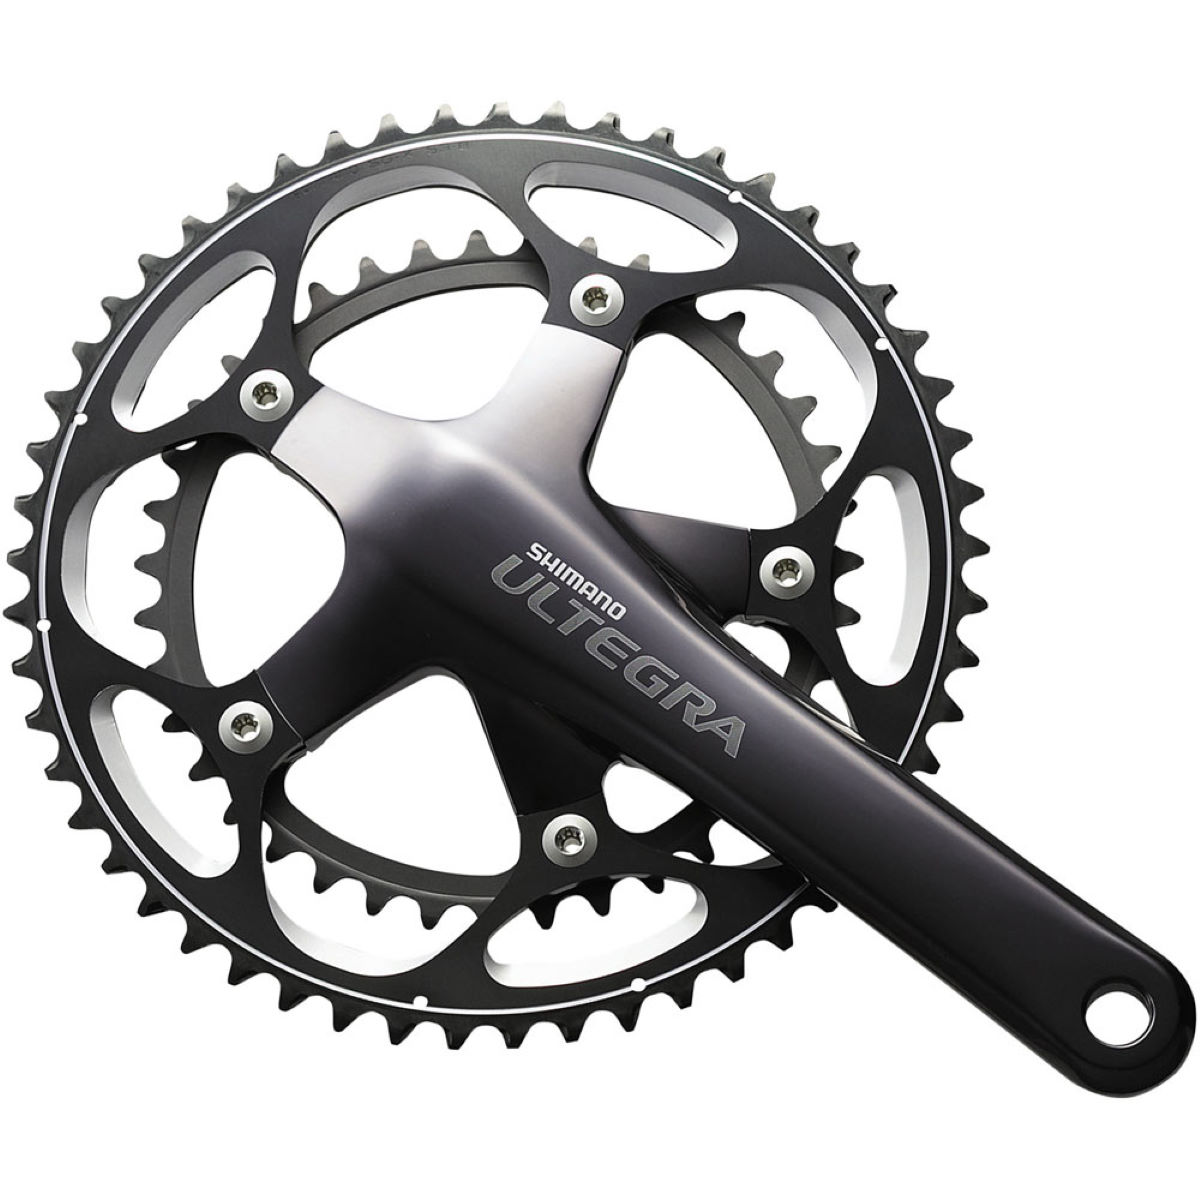 Shimano Ultegra SL 6601 Hollowtech II Double Chainset